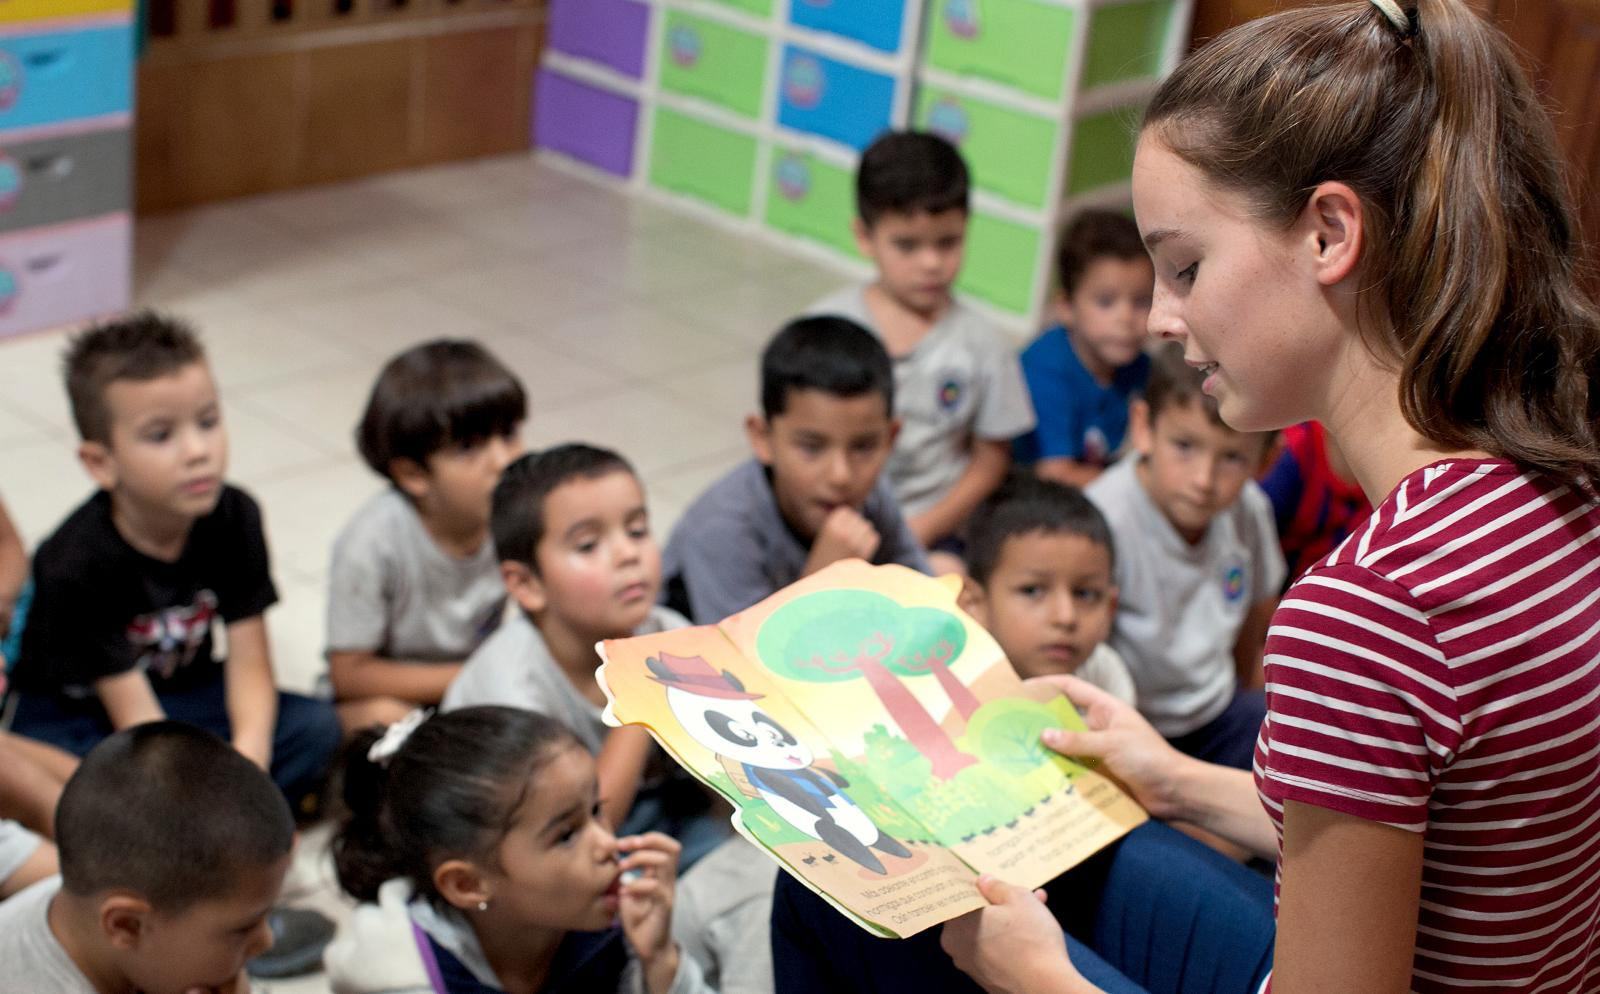 Childcare and Conservation volunteer reads a story to the children in her class